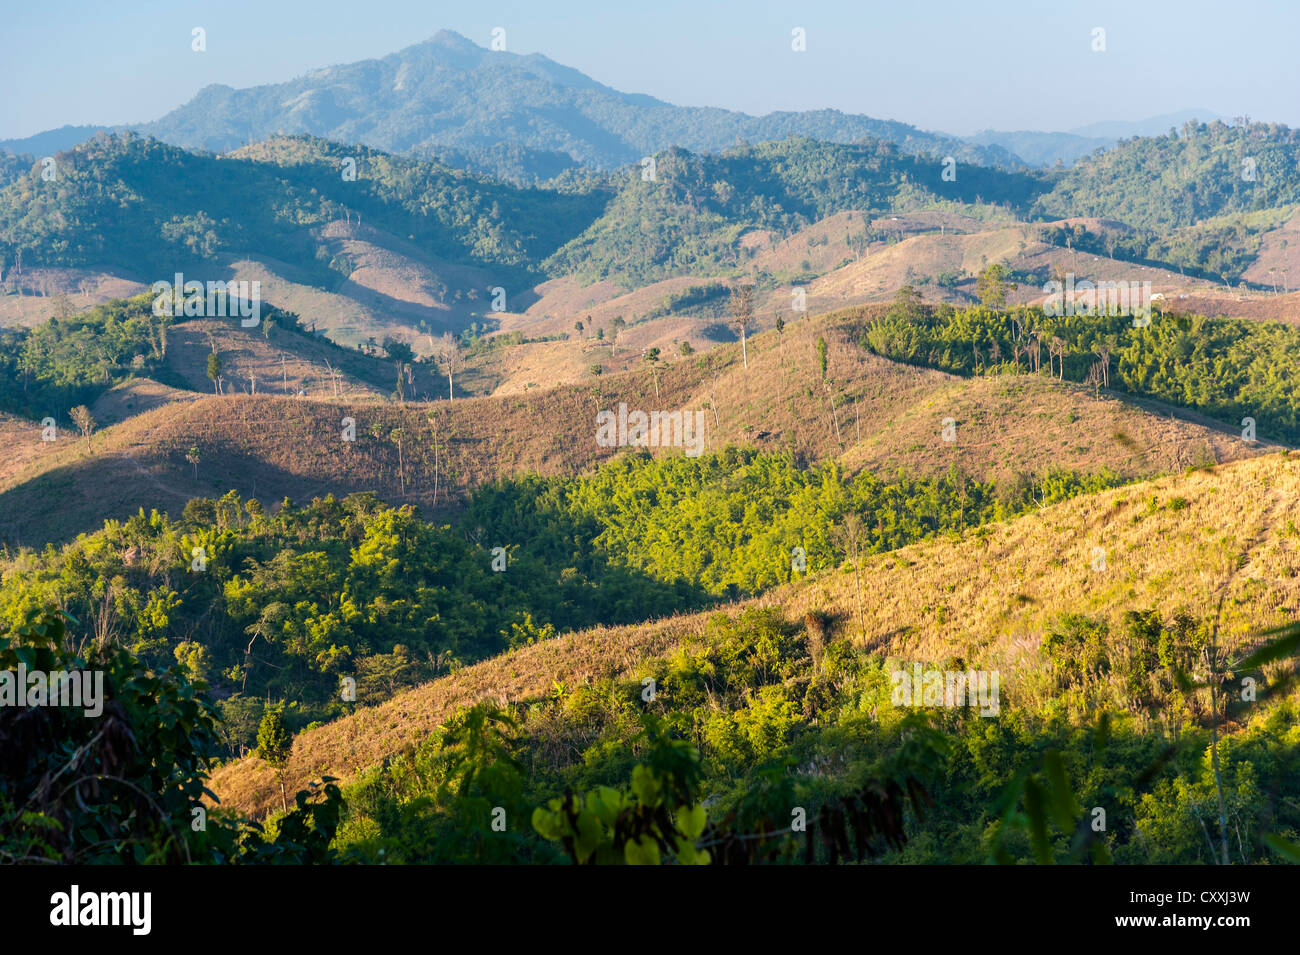 Landscape, harvested maize fields, bamboo forest, Northern Thailand, Thailand, Asia - Stock Image